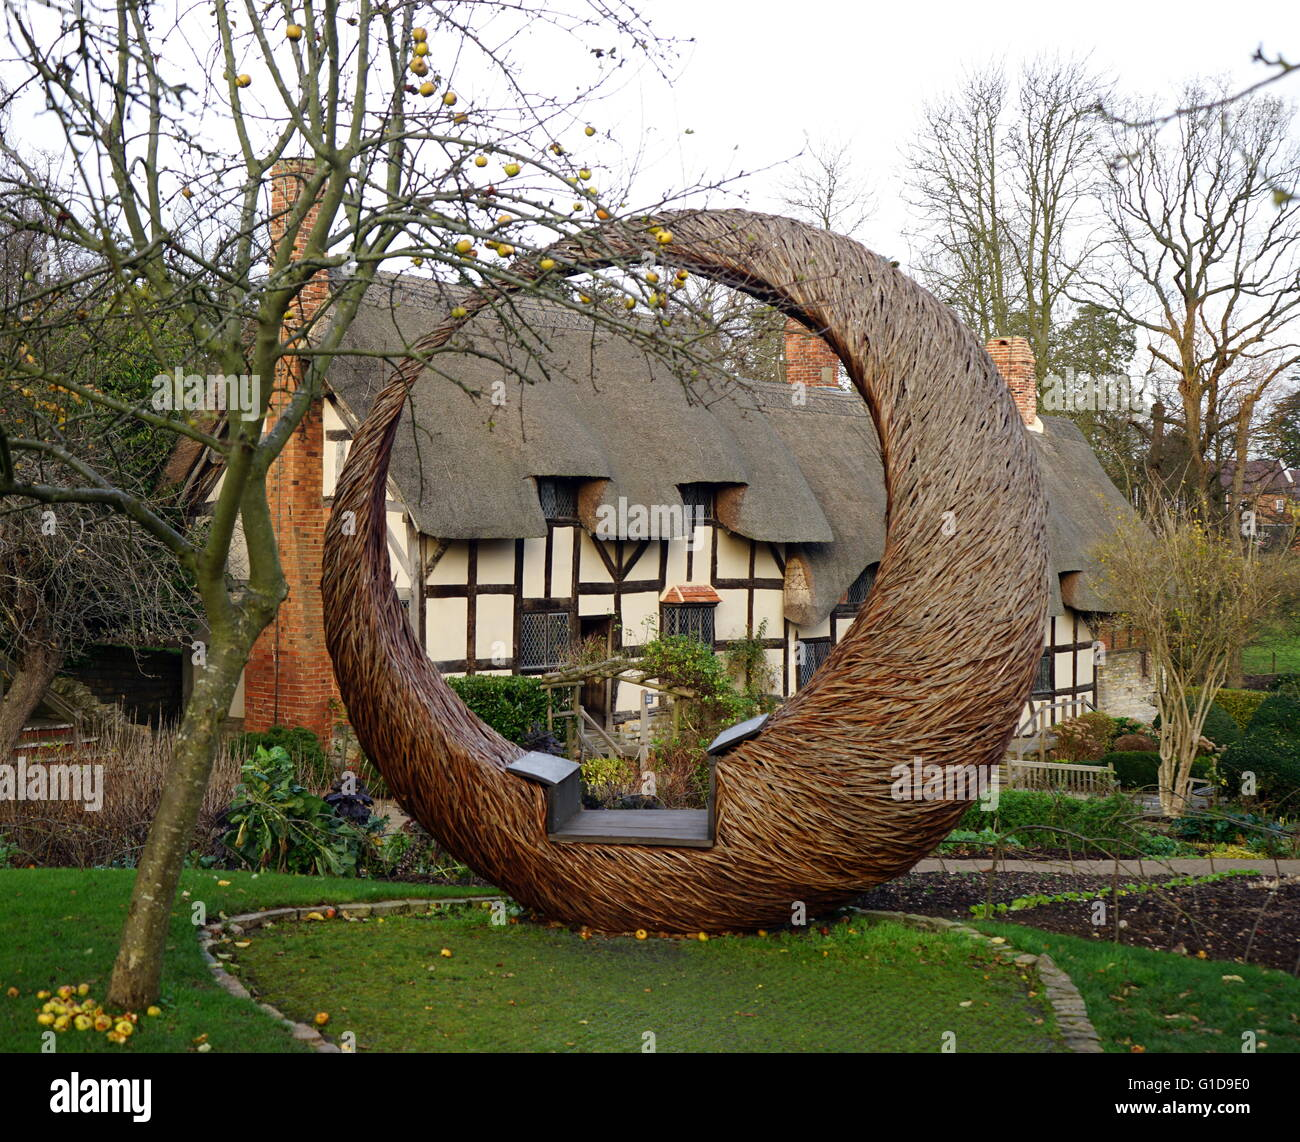 Anne Hathaway's Cottage, where Anne Hathaway, the wife of ...